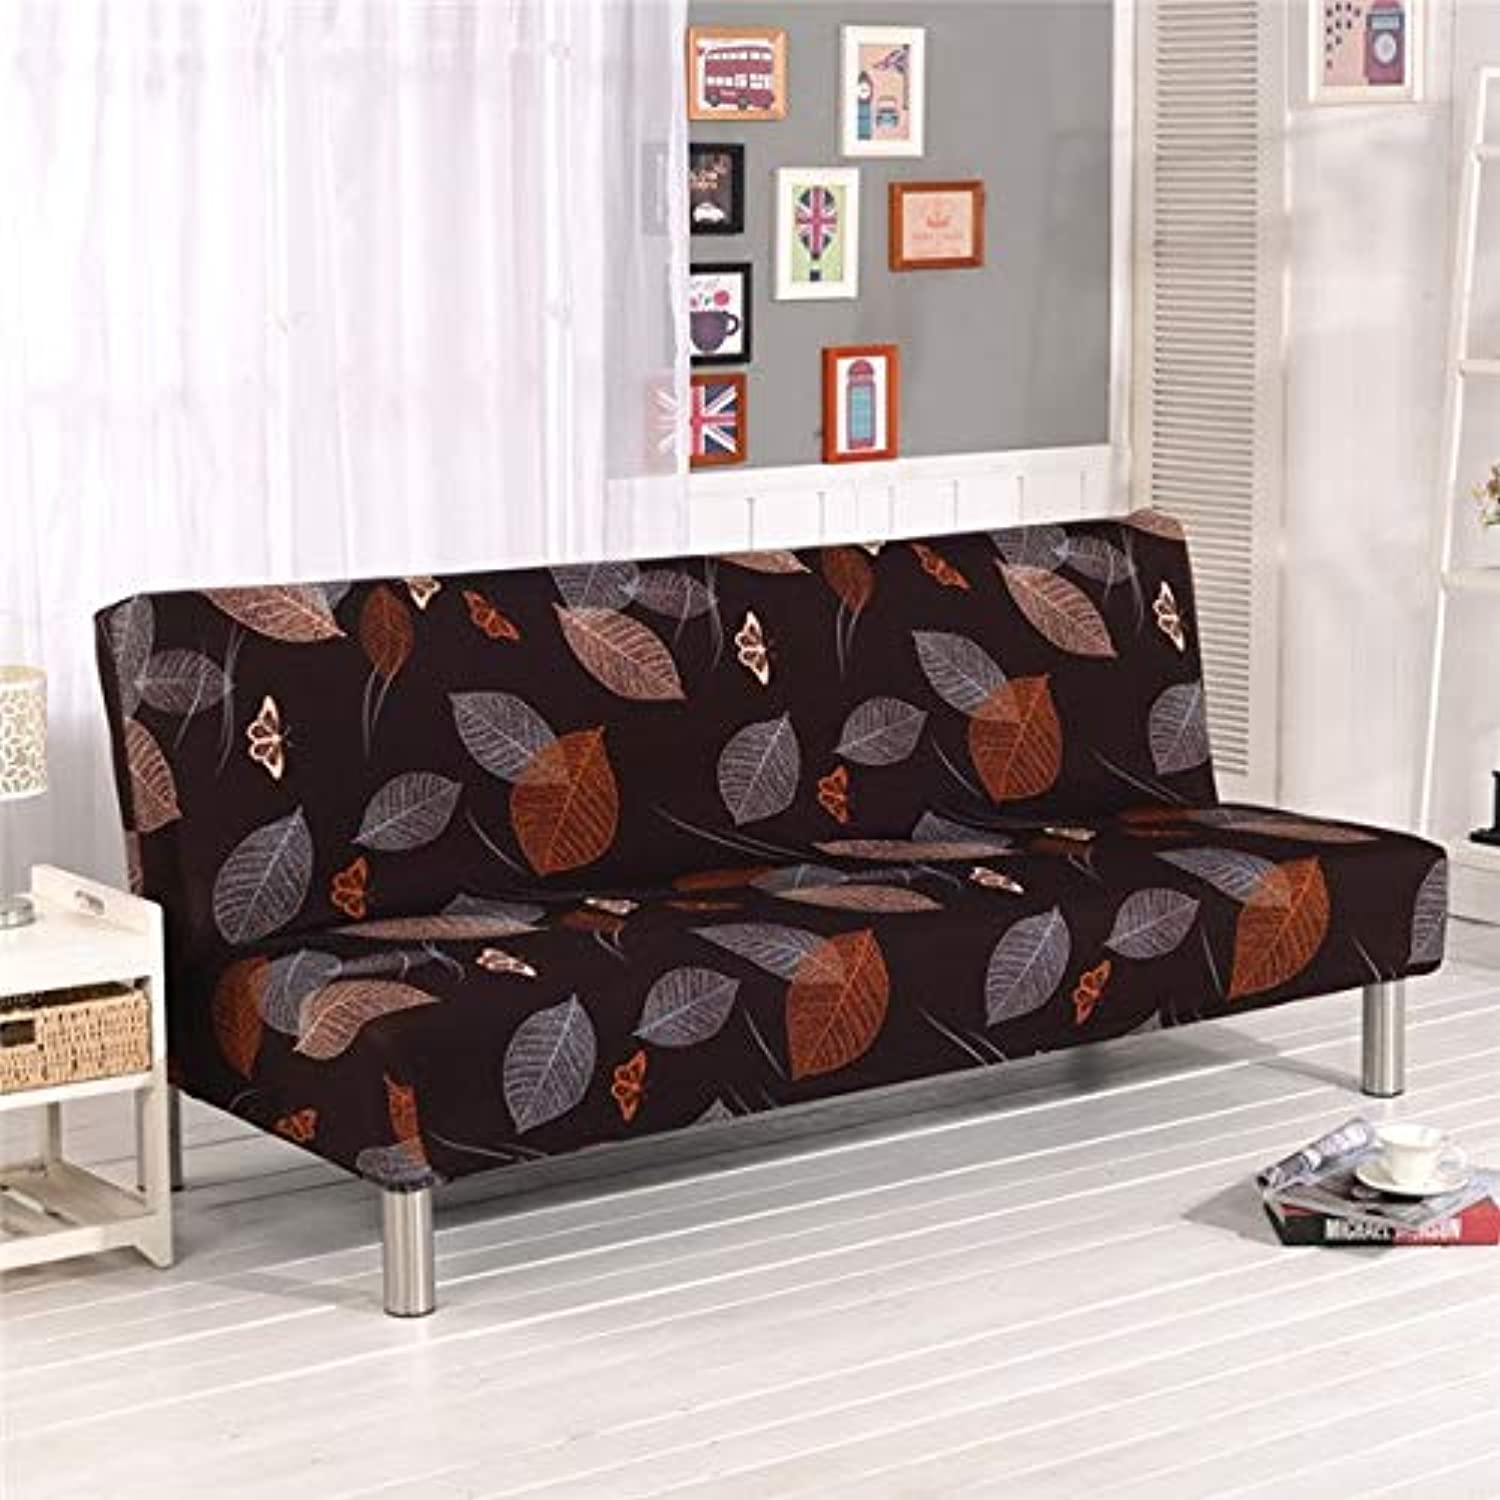 New Drop Shipping Solid color Soft All-Inclusive Fabric Cover Sofa Slipcover Elastic Sofa Cover Couch Cover for 1 2 3 4 Seats   SC01202, Three Seater